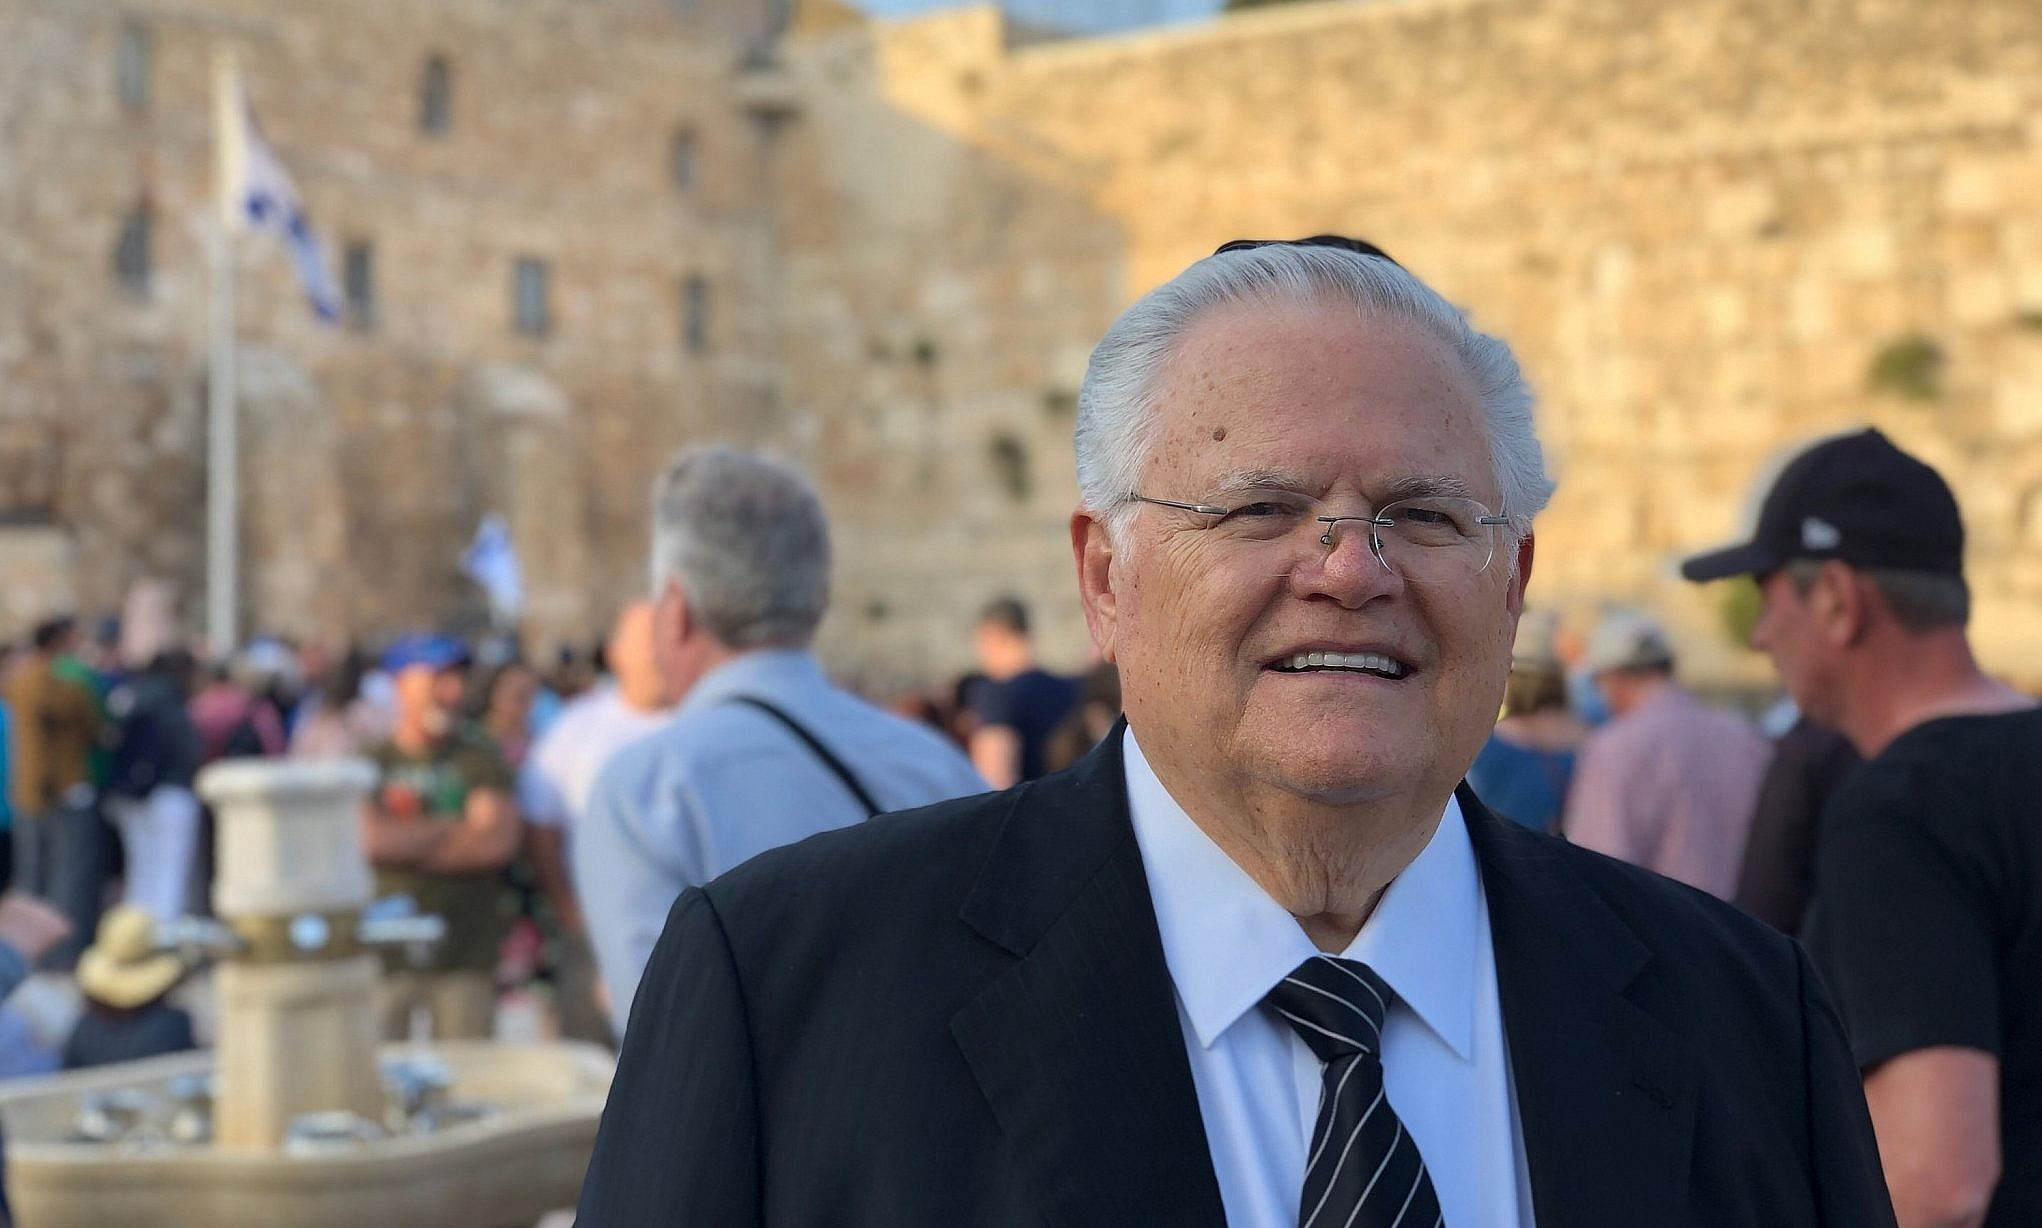 Top pro-Israel evangelical leader sees 'wellspring' of